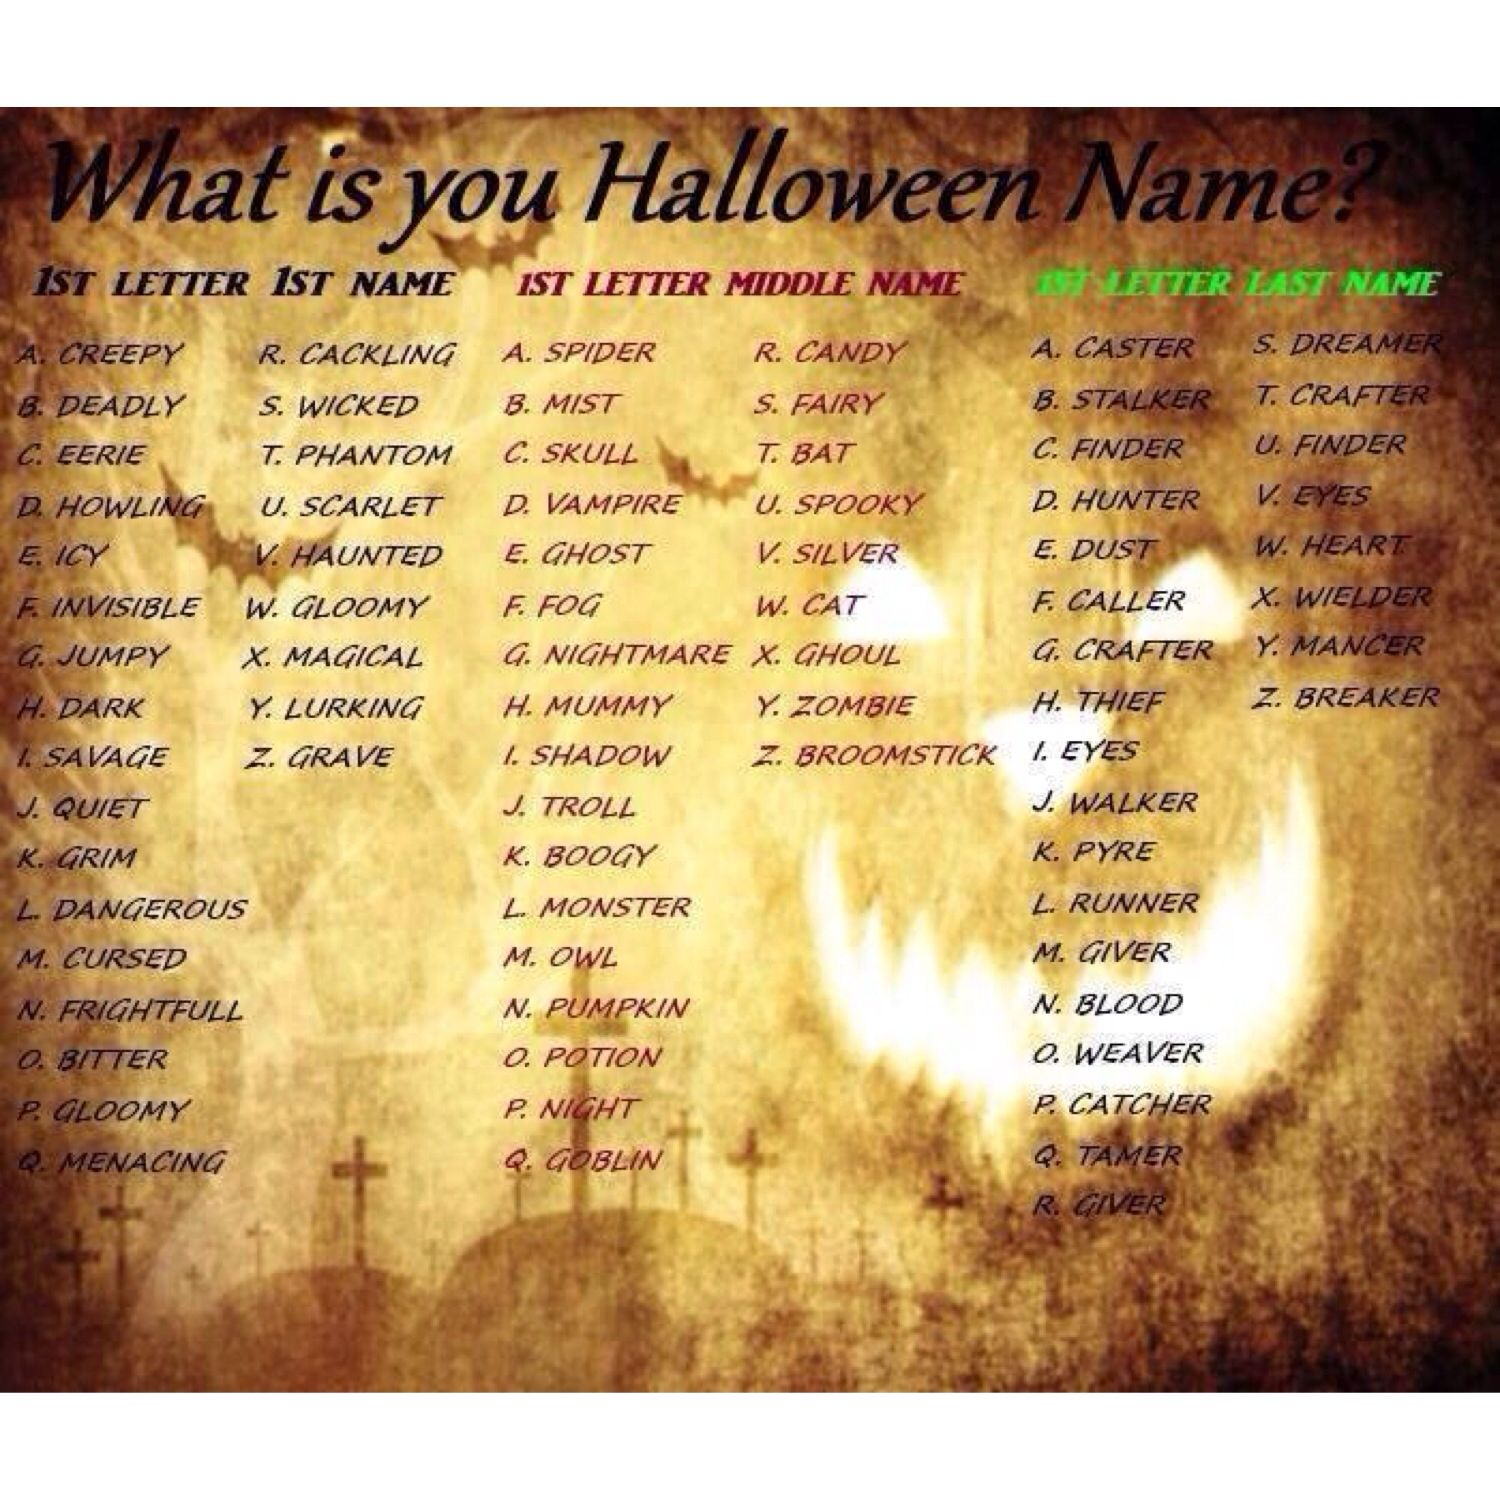 Shapely Halloween Name Generator Halloween Name Generator Your Pinterest Halloween Party Names Reddit Halloween Party Me Names art Halloween Party Names